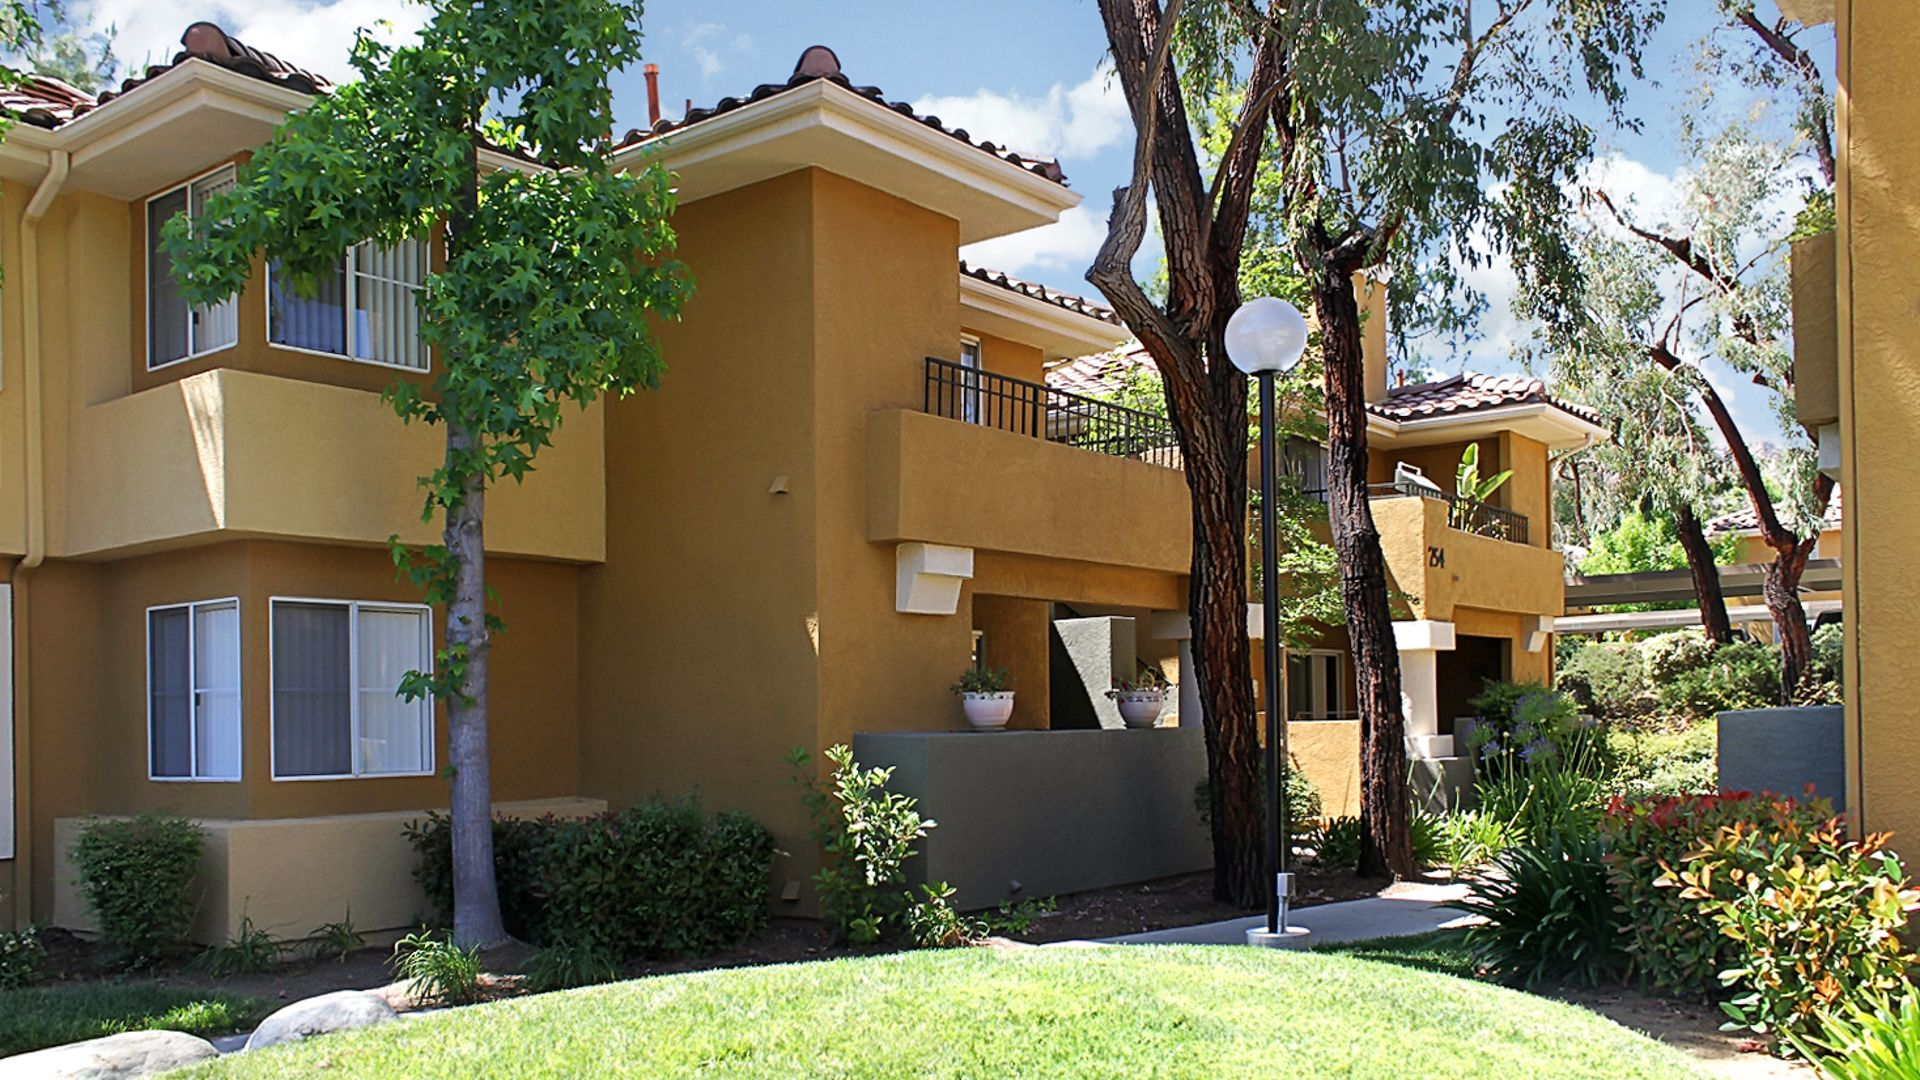 Oak Park Apartment Homes - Oak Park, CA - 5325 Oak Park ...